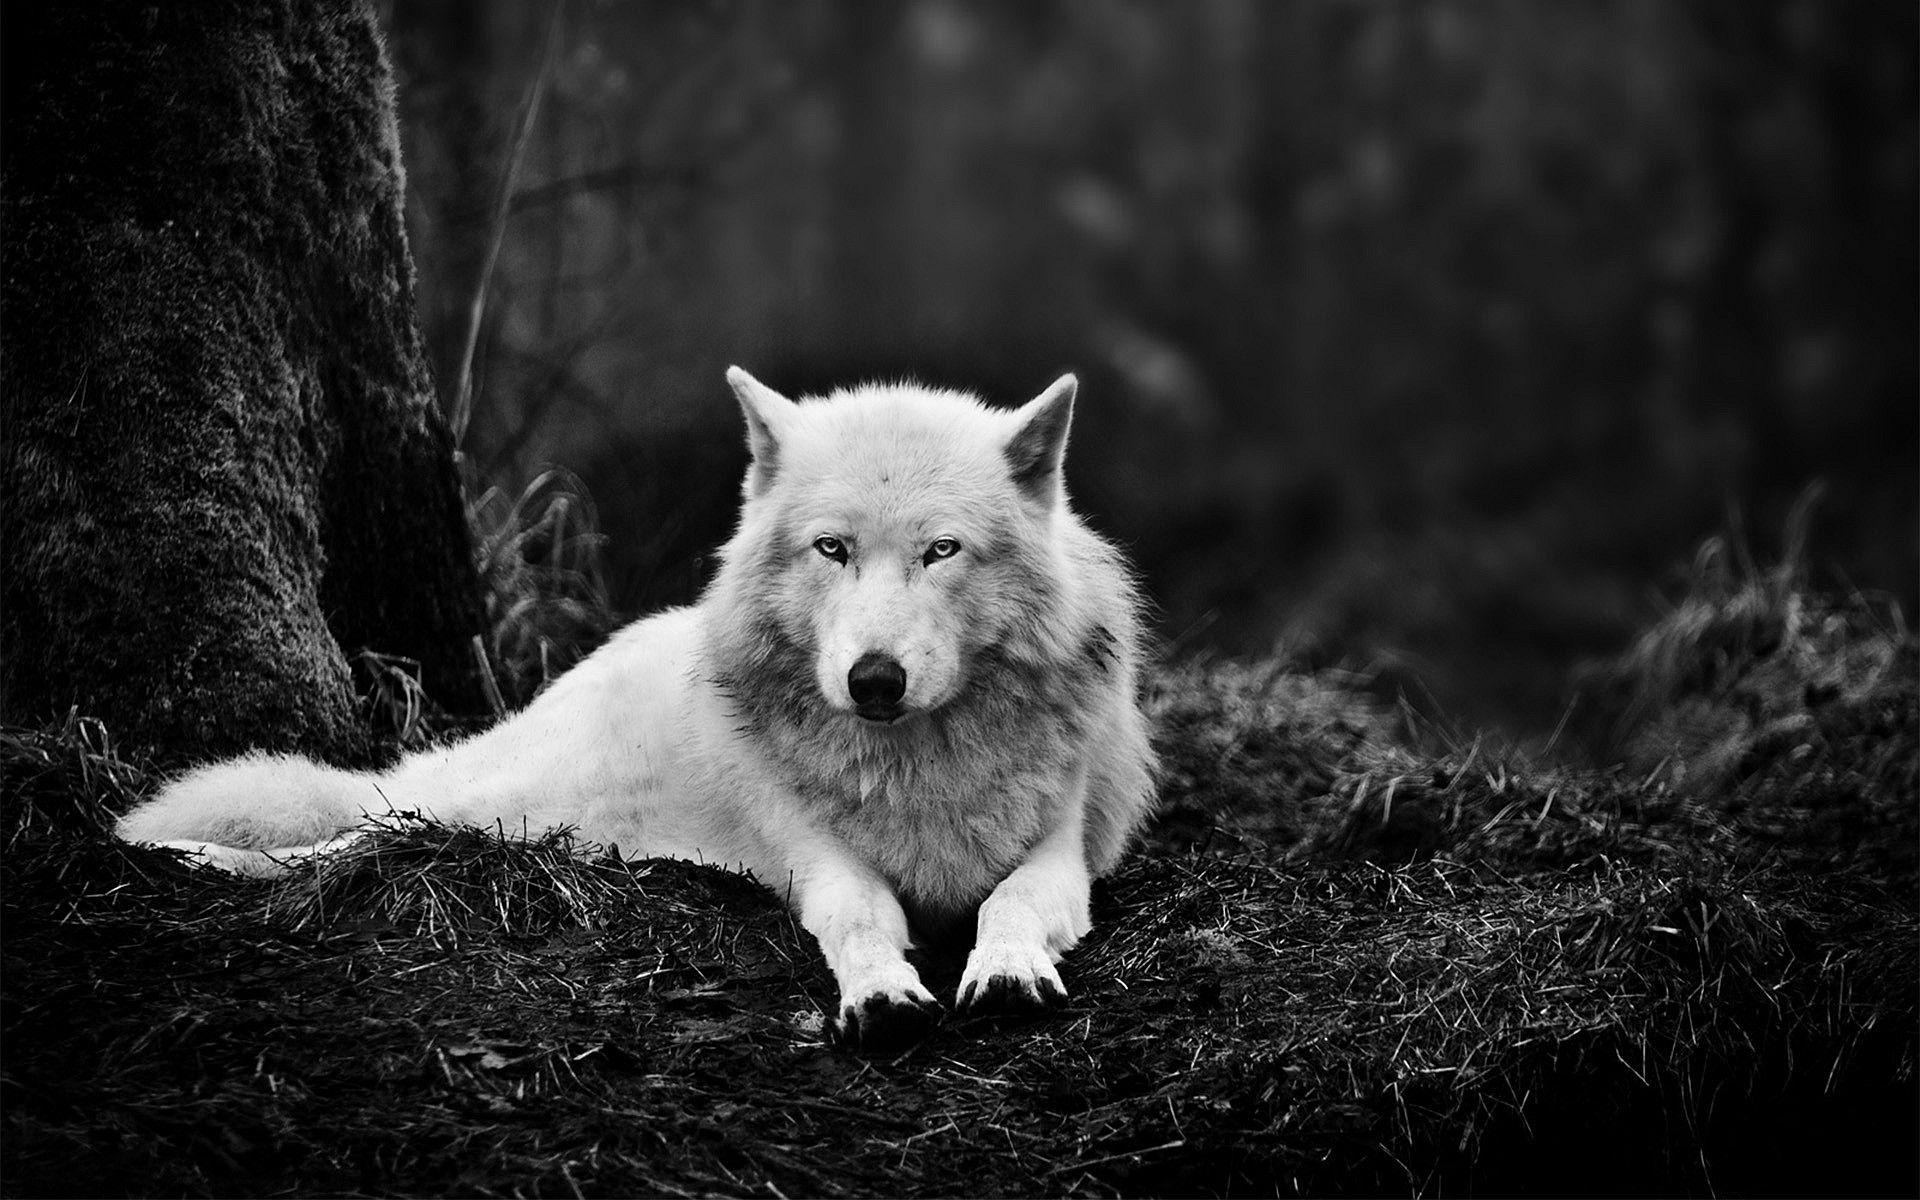 Dreaming about wolves